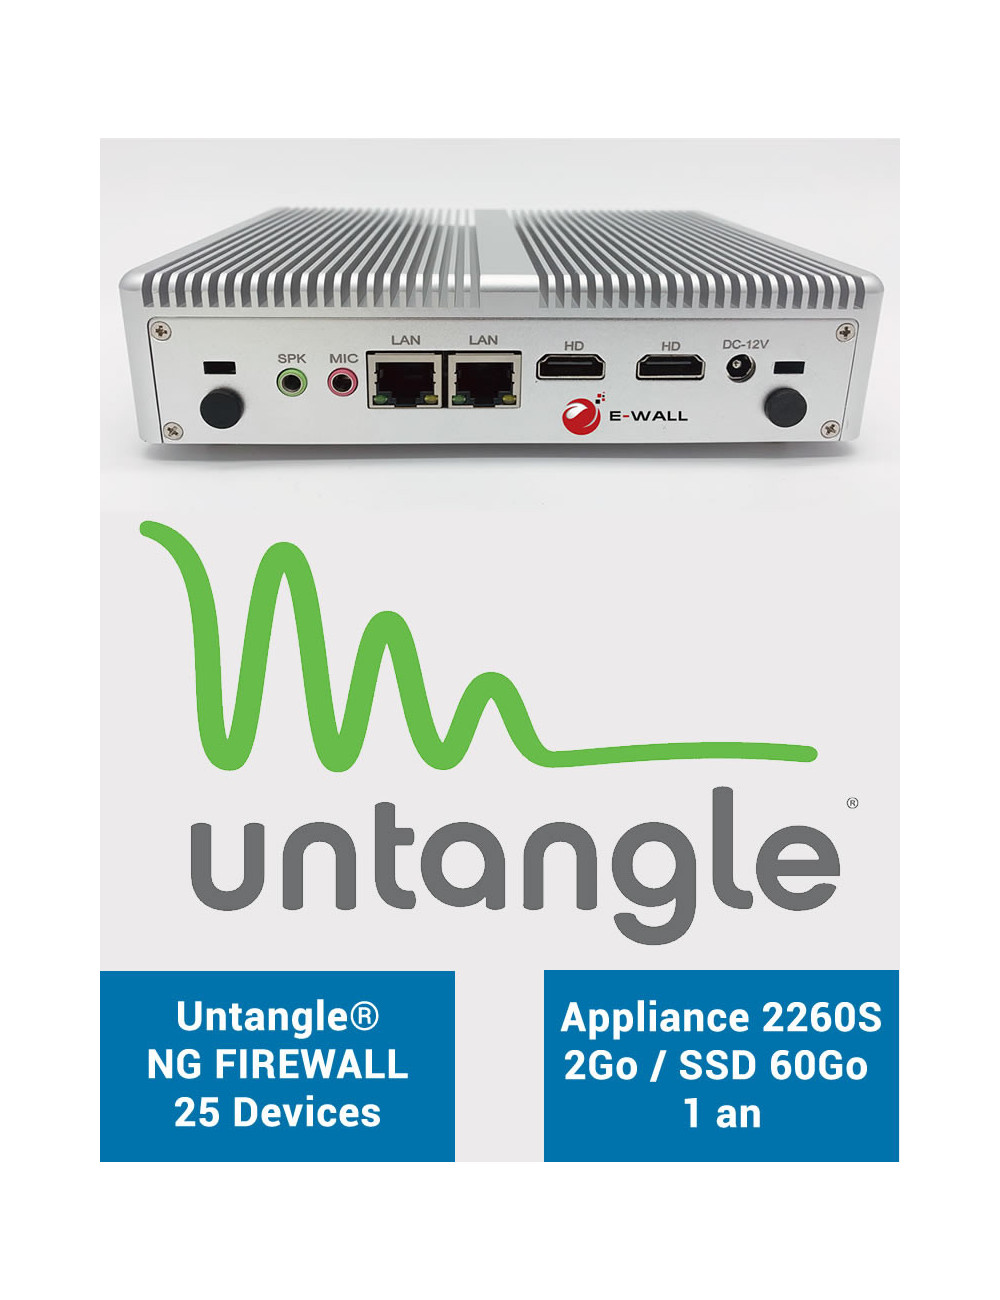 Firewall E-WALL EG2260S sous Untangle® NG 25 Devices 2 ports 2Go SSD 60Go